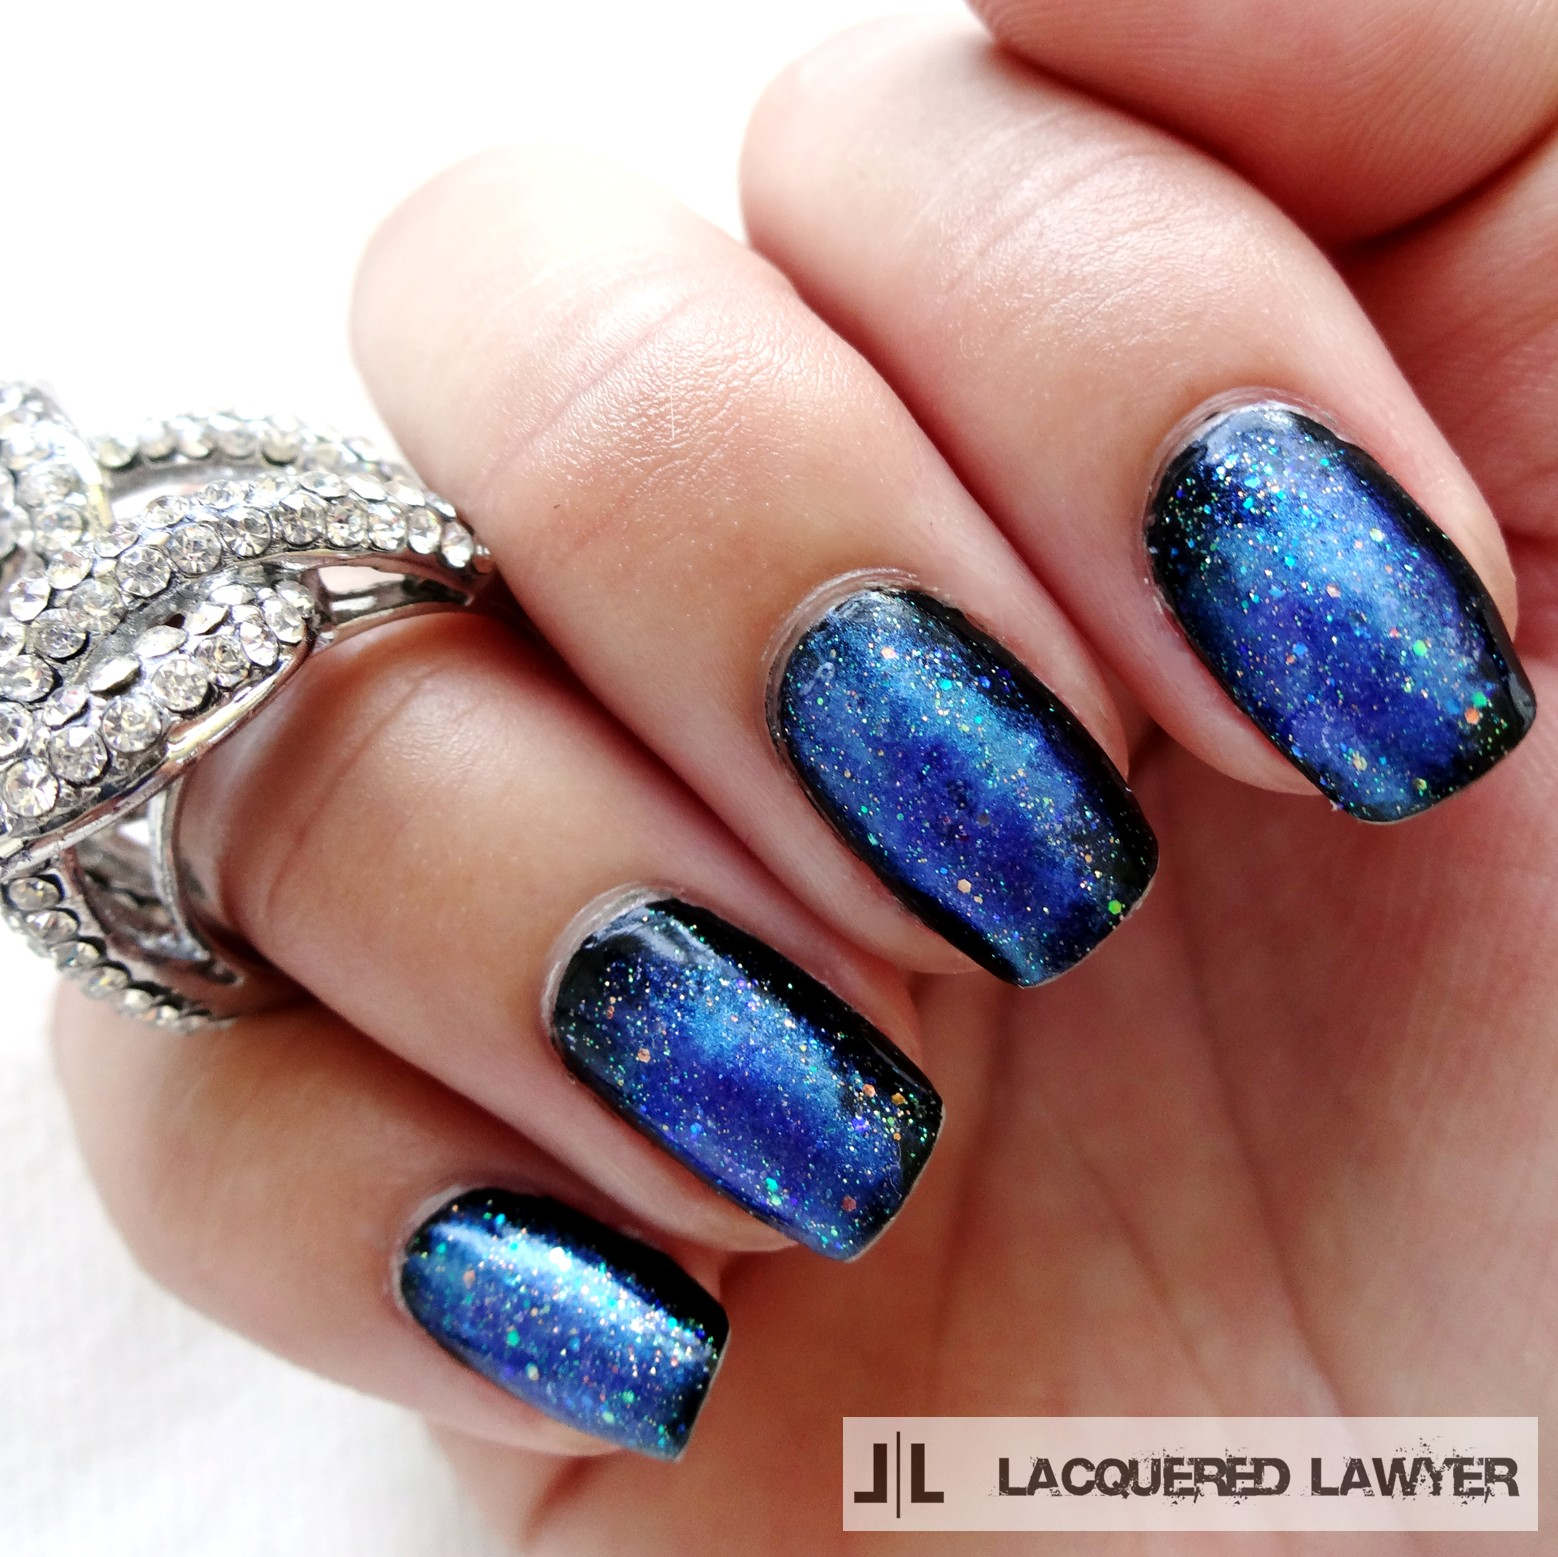 Lacquered Lawyer | Nail Art Blog: In A Galaxy Far Far Away